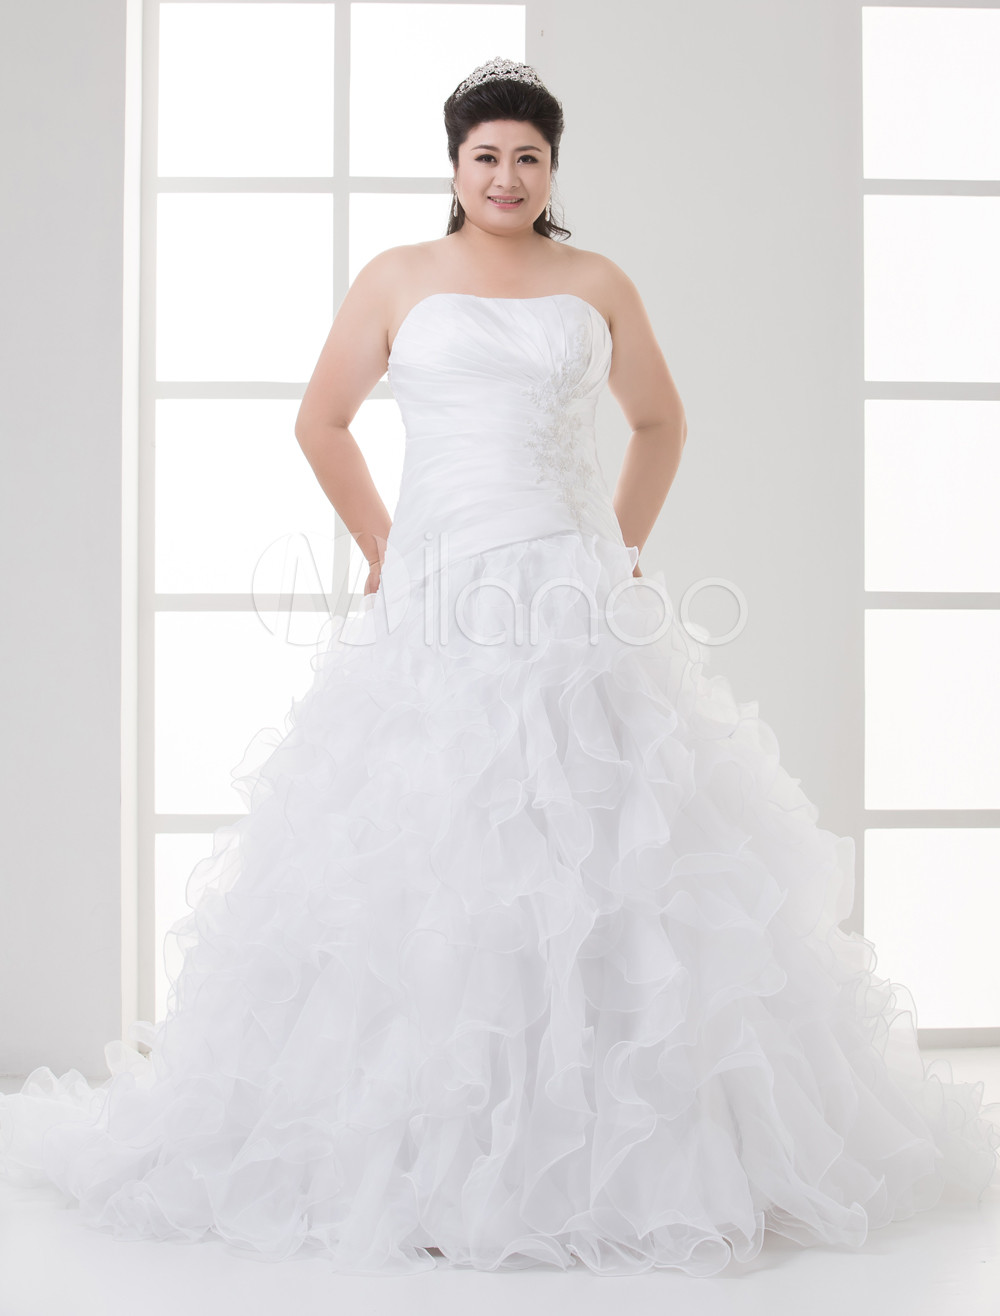 White Ball Gown Strapless Tiered Organza Plus Size Wedding Dress For Bride